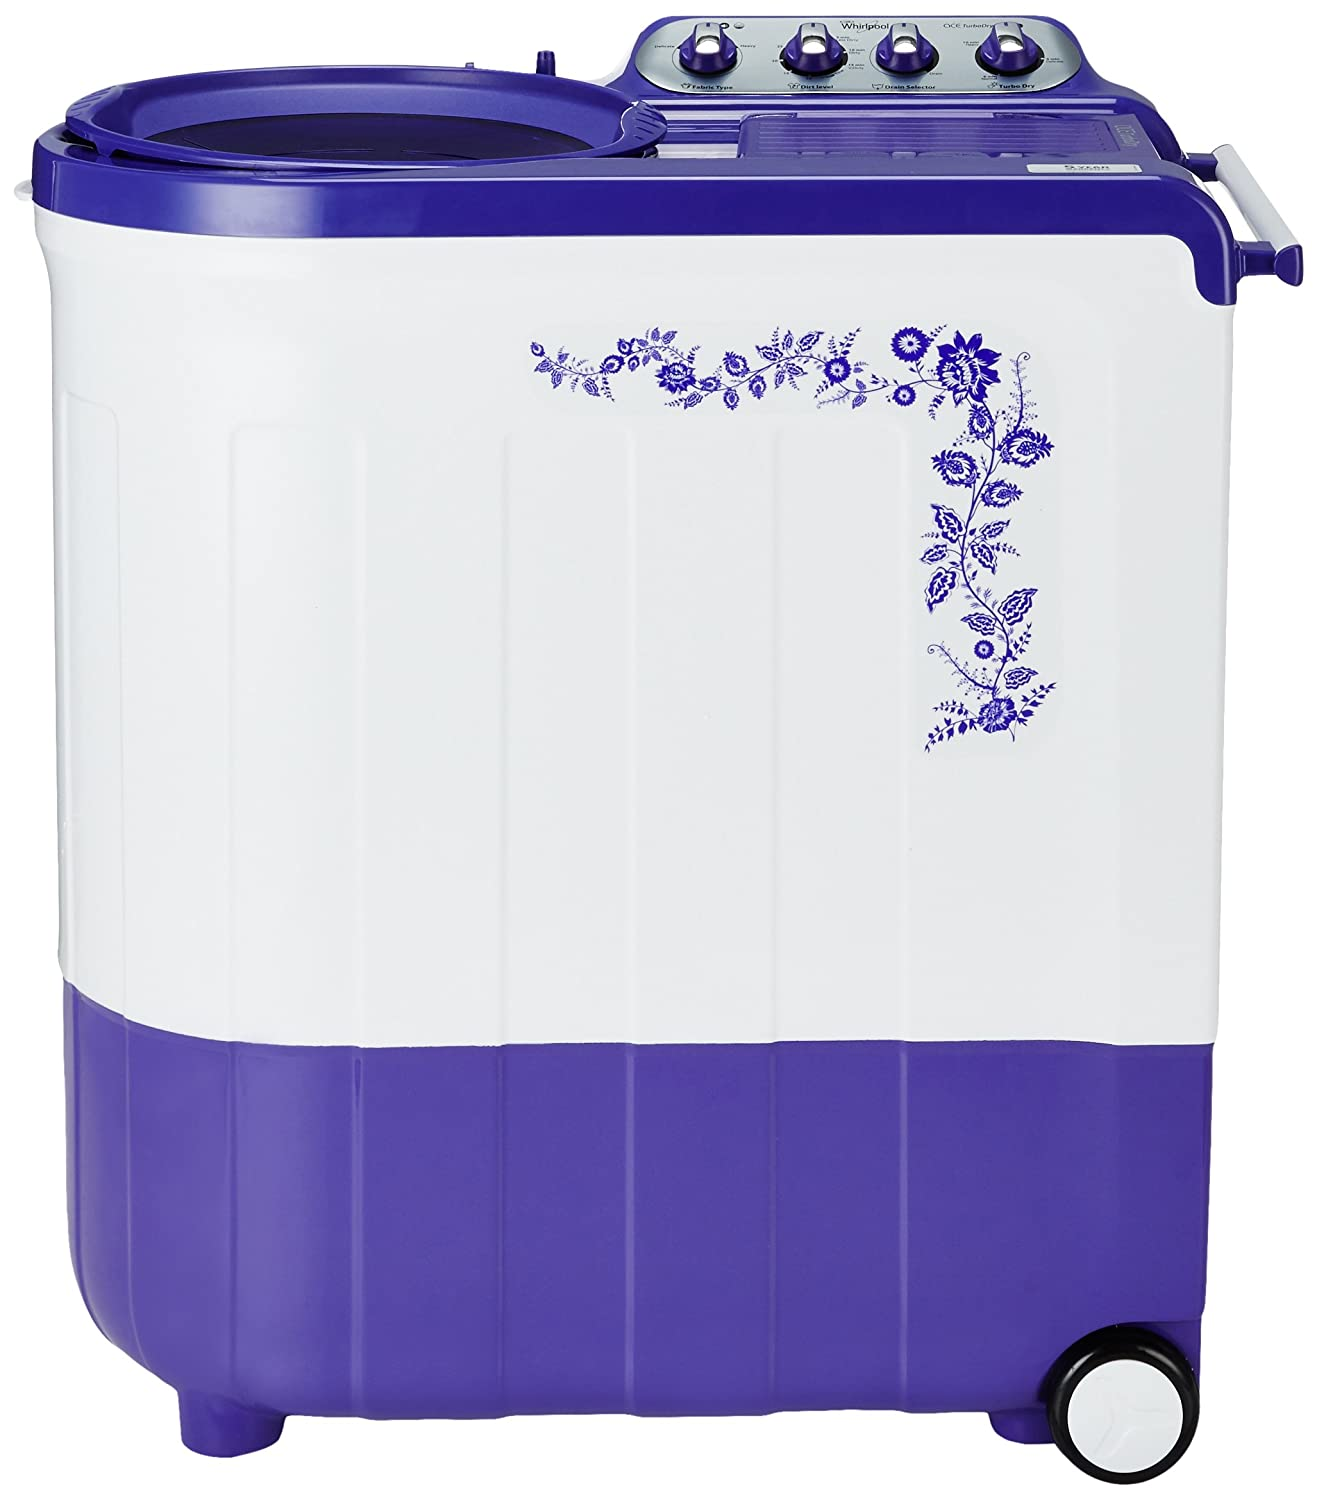 Whirlpool 7.5 kg Semi-Automatic Top Loading Washing Machine (Ace Turbodry 7.5, Flora Purple)